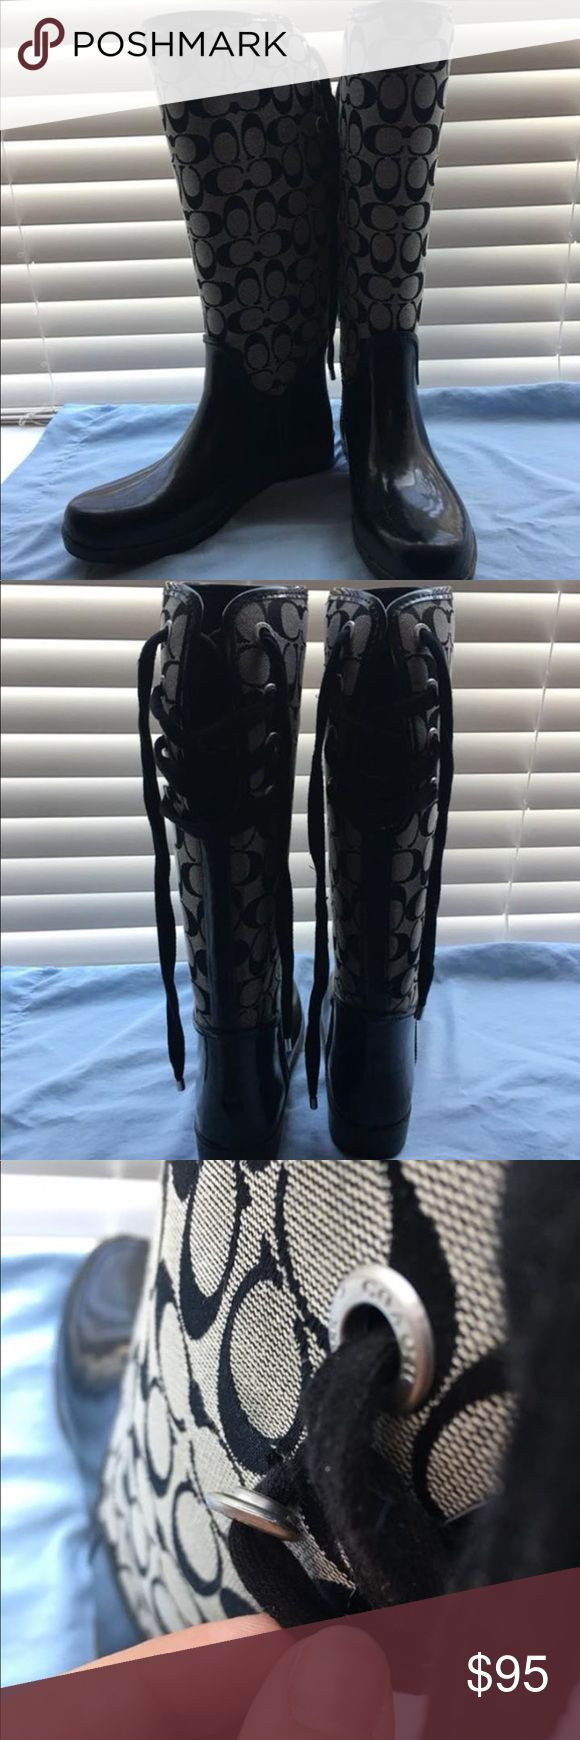 Coach Rain Boots Coach Tristee Rain Boots with some minor flaws! In mint condition. Hardly worn! Coach Shoes Winter & Rain Boots